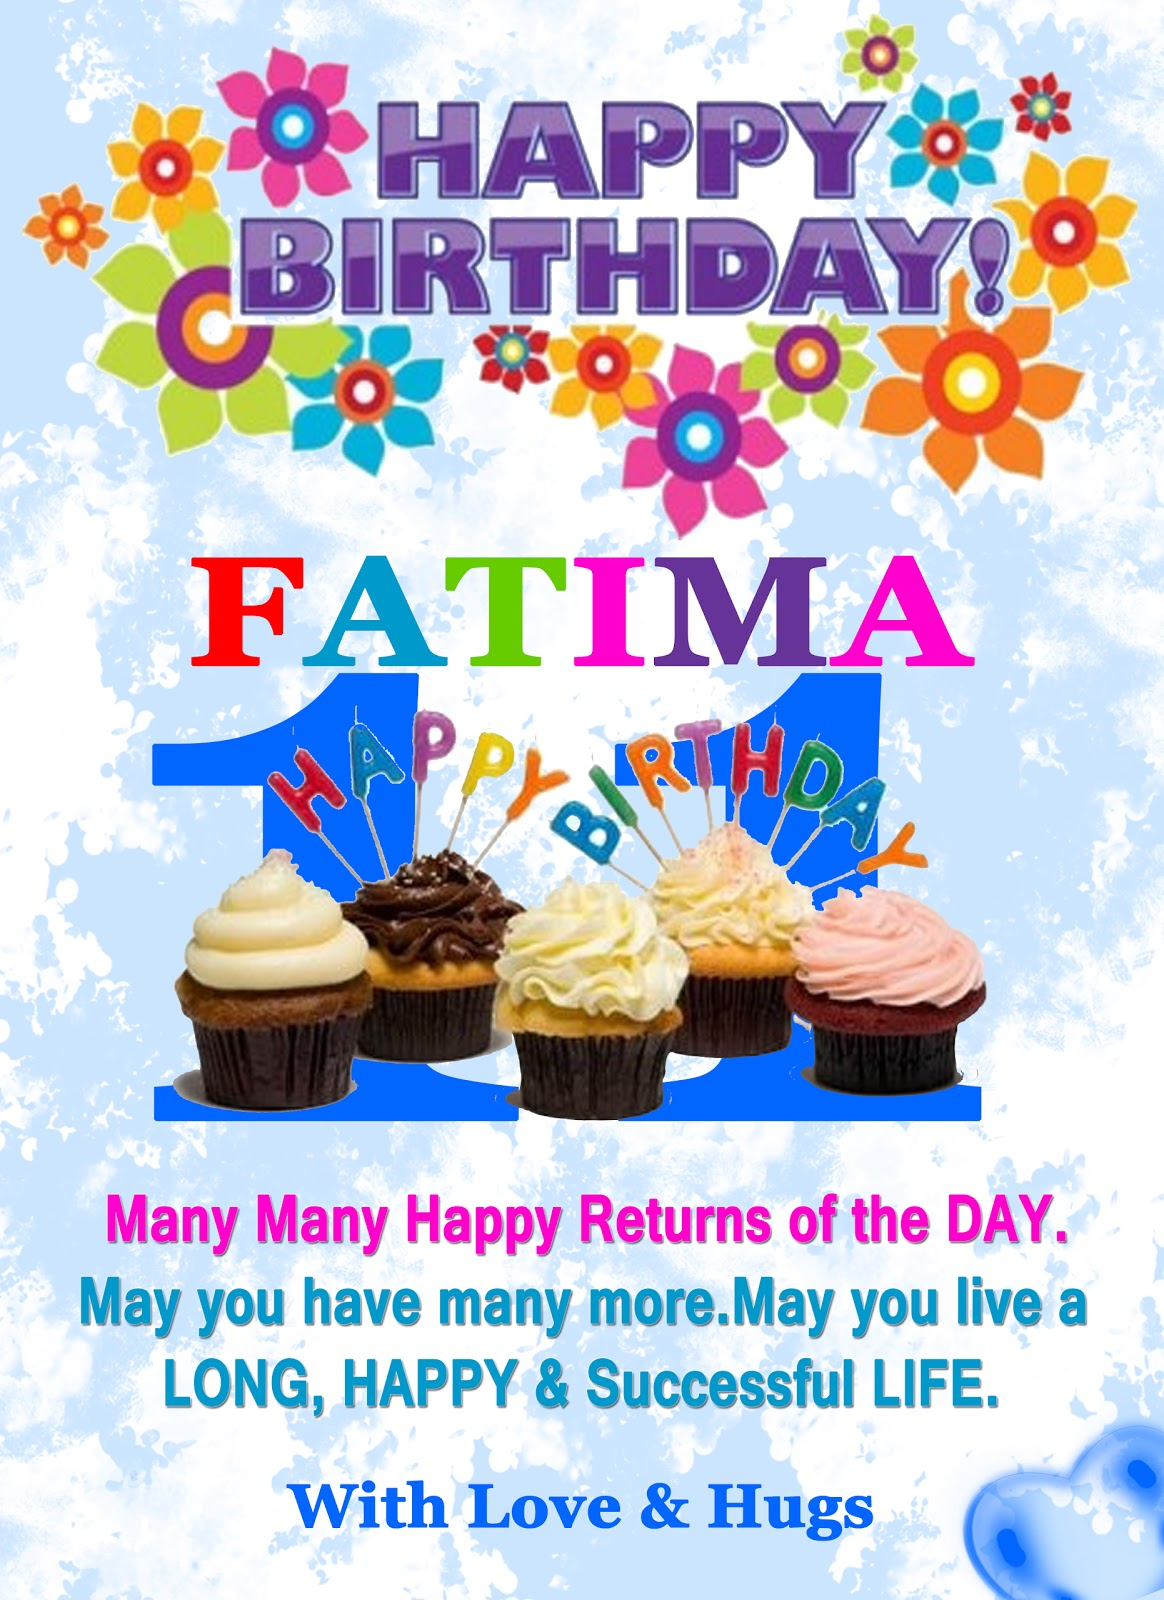 Birthday Cake Pics With Name Fatima : Happy Birthday Fatima Zafar ~ AMNA ZAFAR (AIMZ)